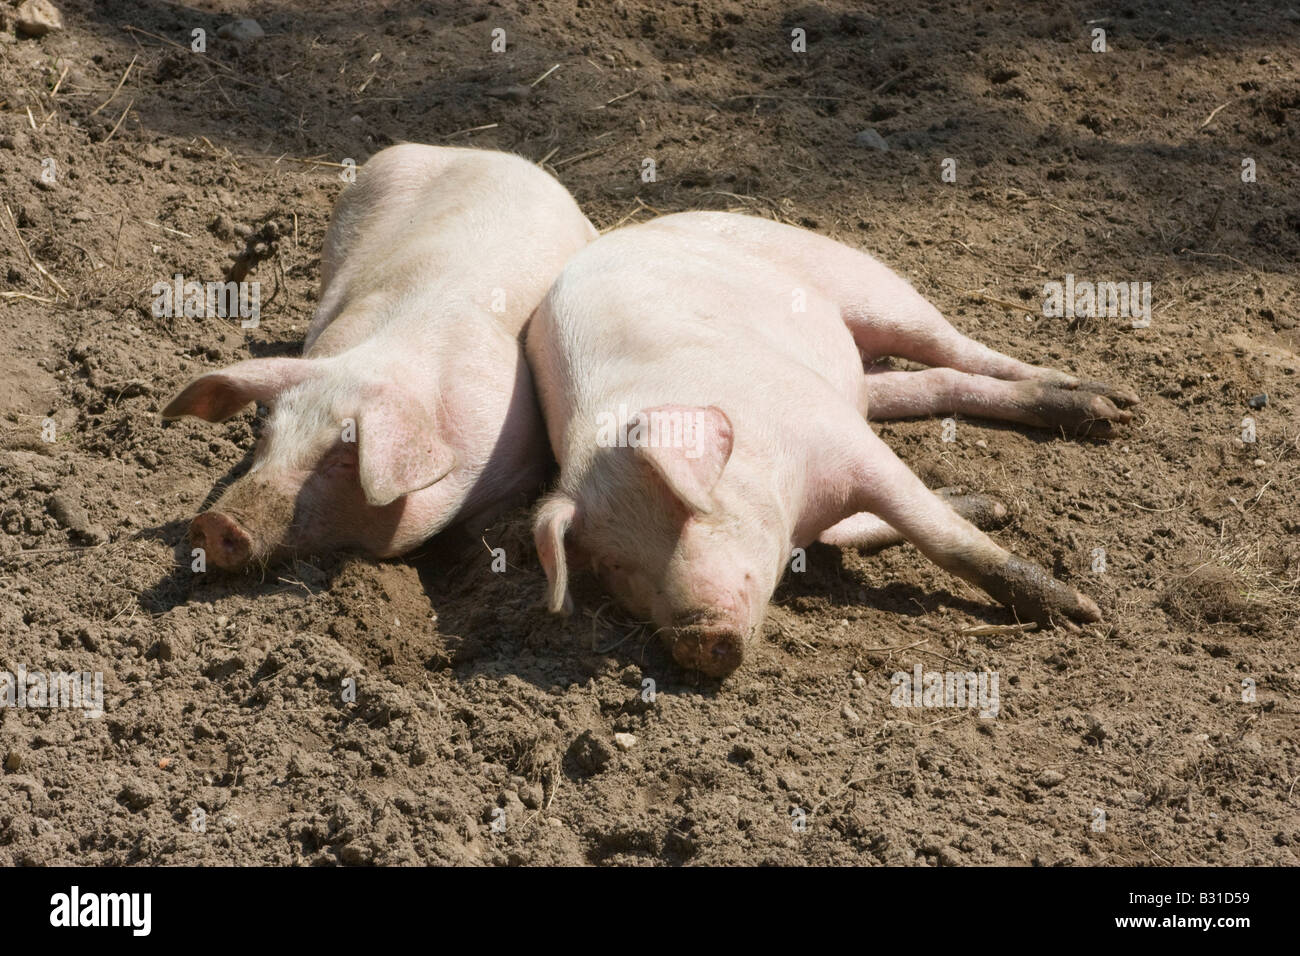 Freerange pigs sleeping in the mud A real hog s heaven July 2008 - Stock Image